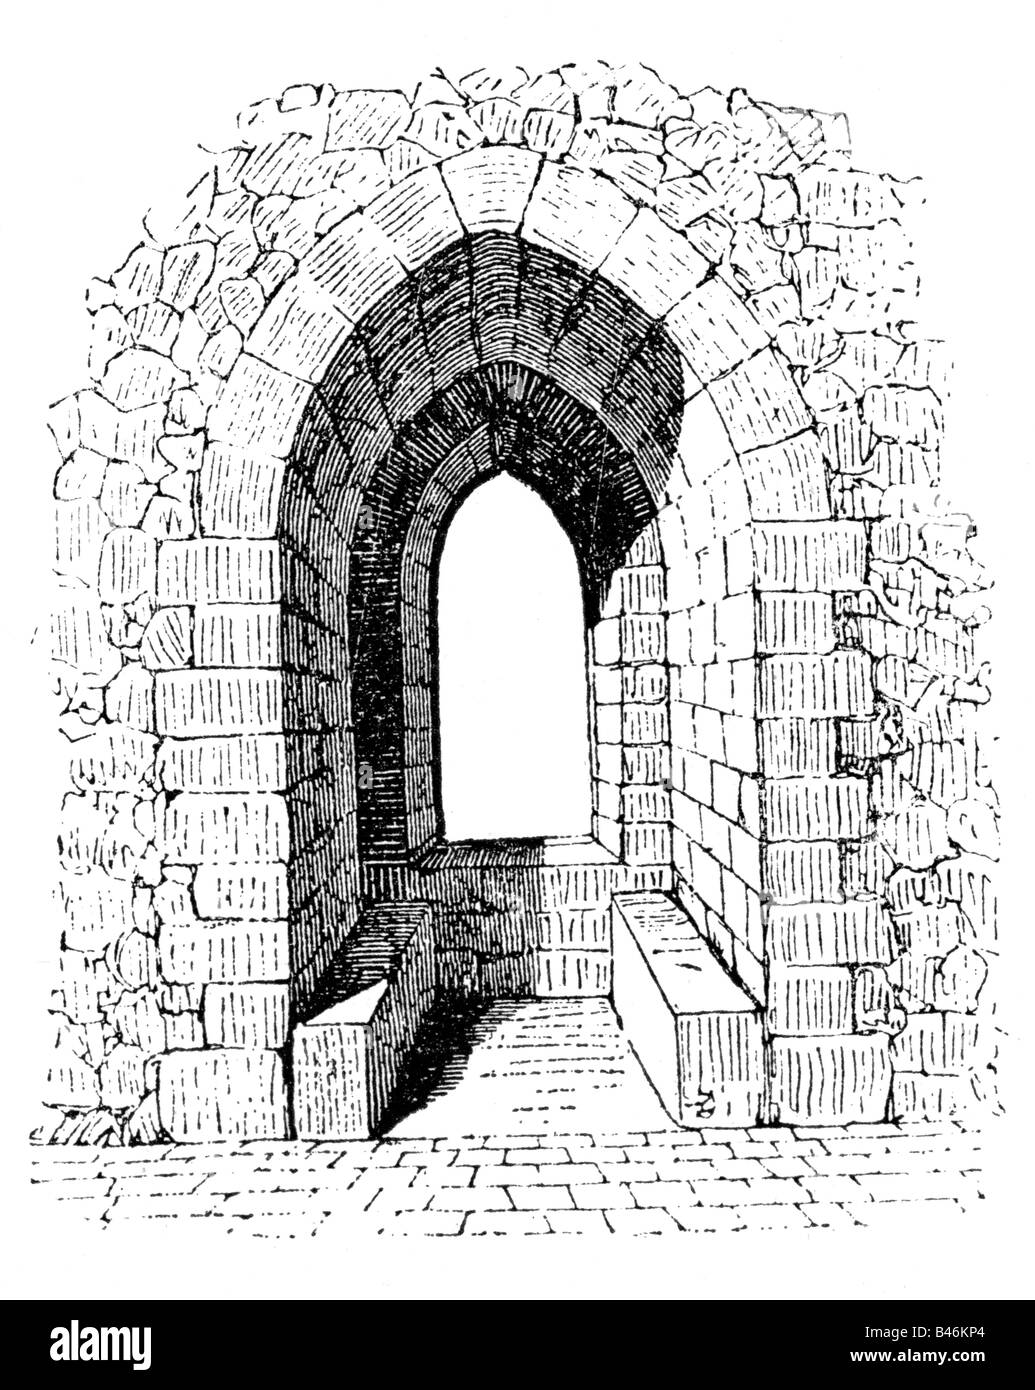 Architecture Castles Detail Seats At A Window Wood Engraving 19th Century Castle Middle Ages Gothic Historic Historica